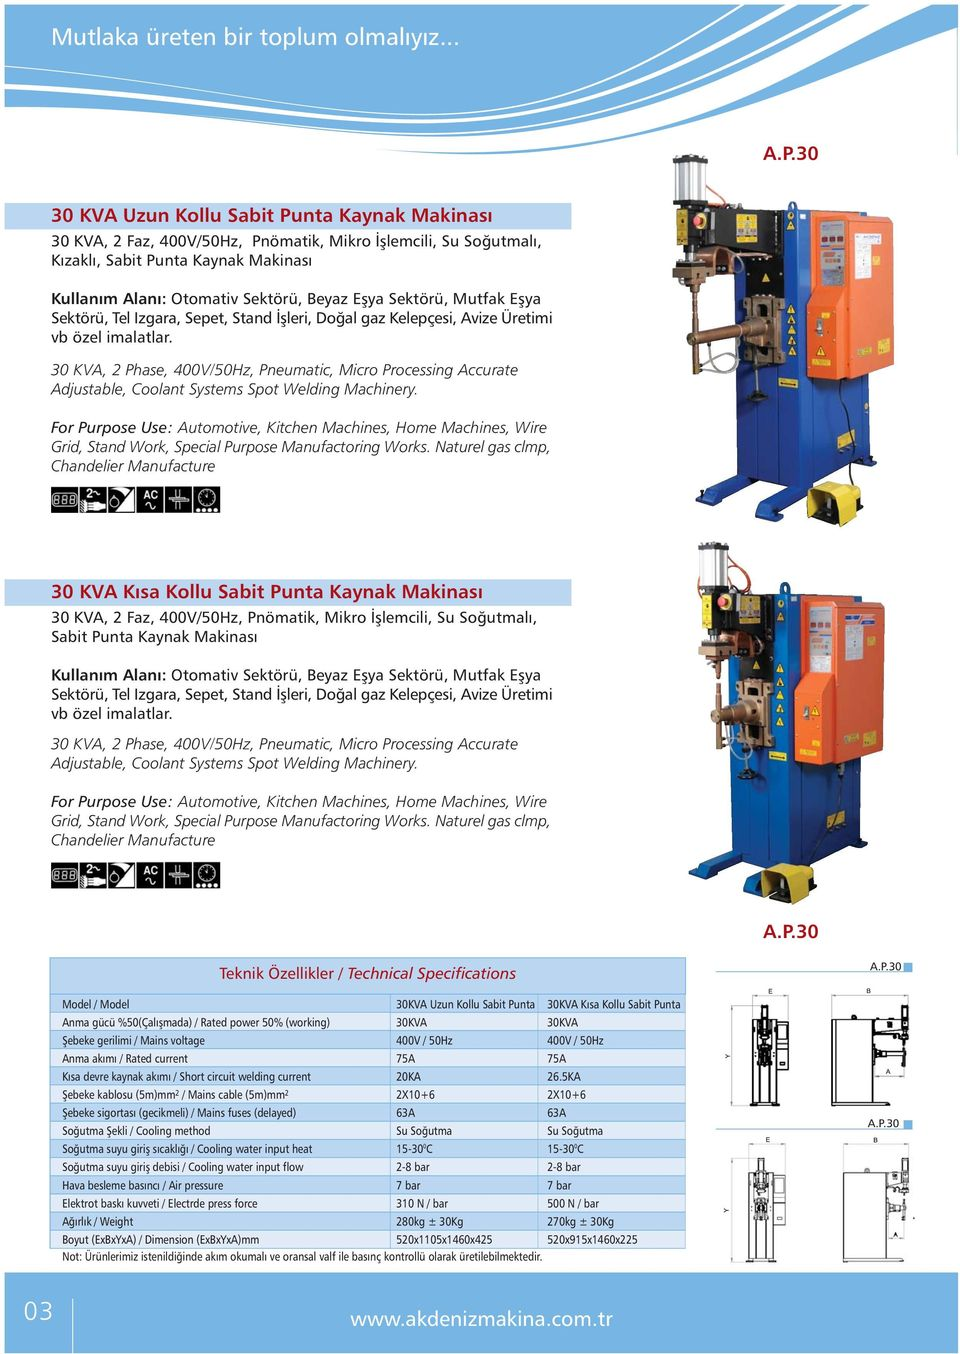 30 KVA, 2 Phase, 400V/50Hz, Pneumatic, Micro Processing Accurate Adjustable, Coolant Systems Spot Welding Machinery. Grid, Stand Work, Special Purpose Manufactoring Works.